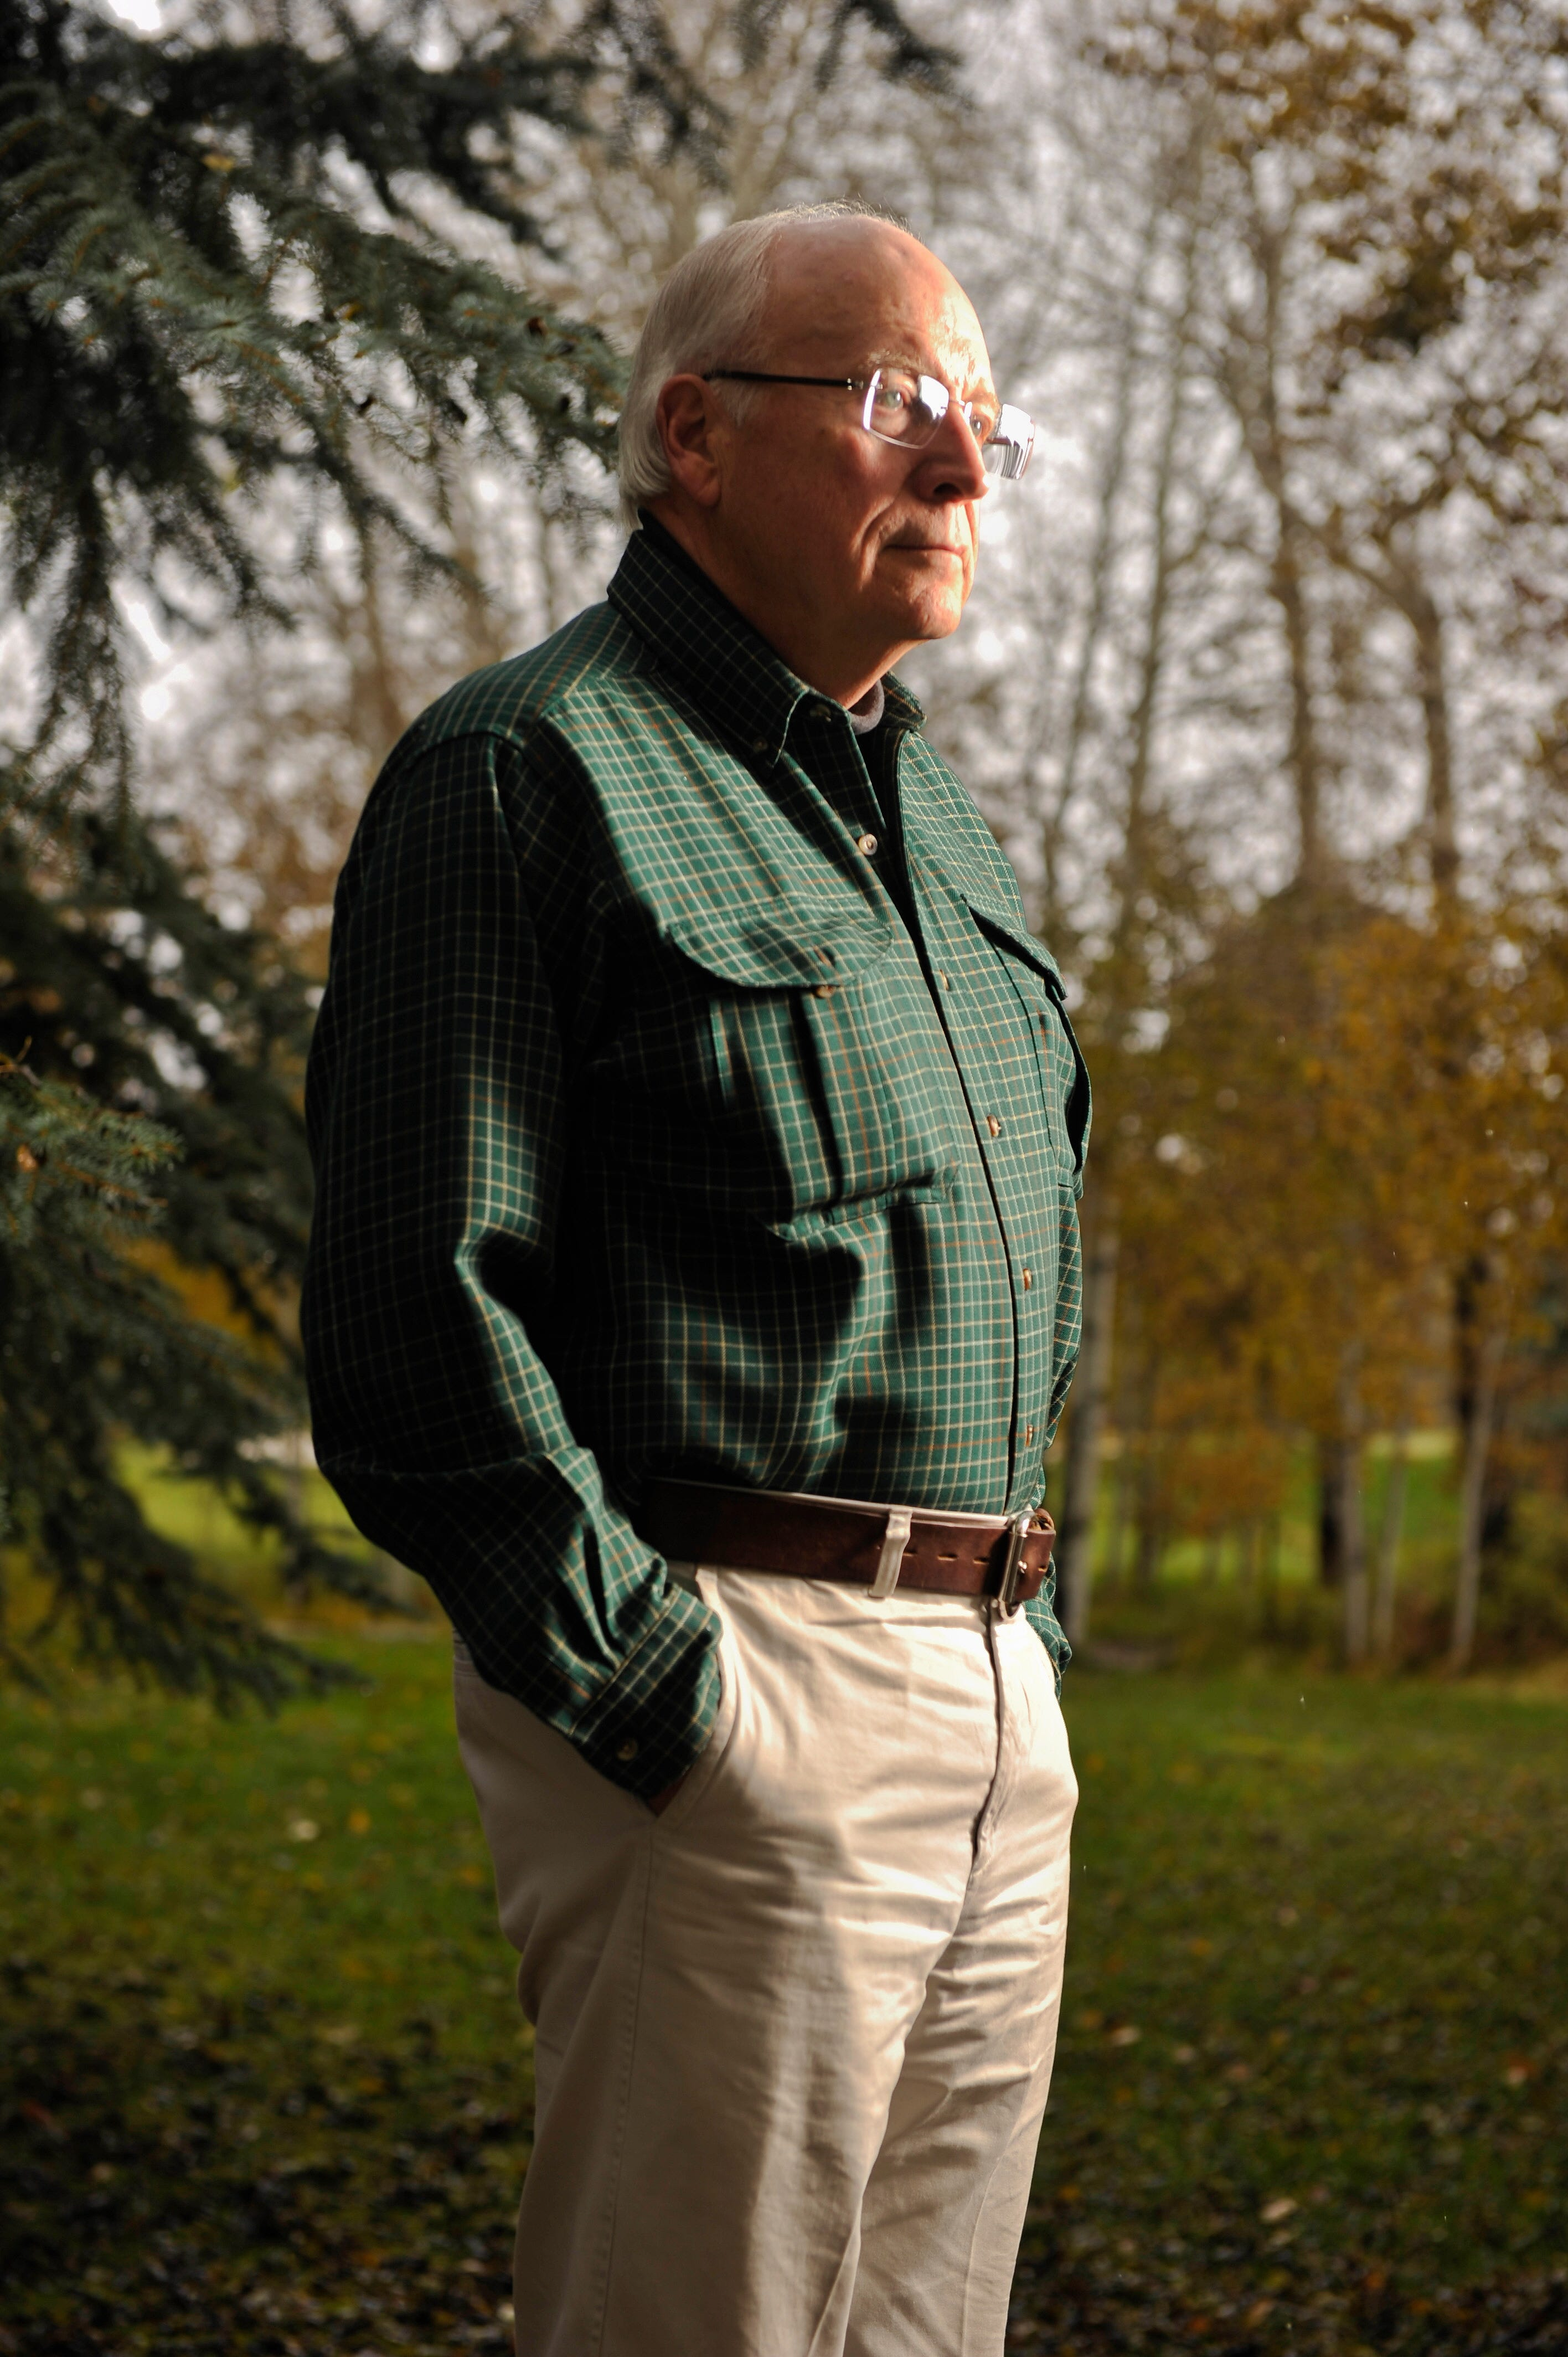 Communication on this topic: Cheney Transplant Turns Focus to Age and , cheney-transplant-turns-focus-to-age-and/